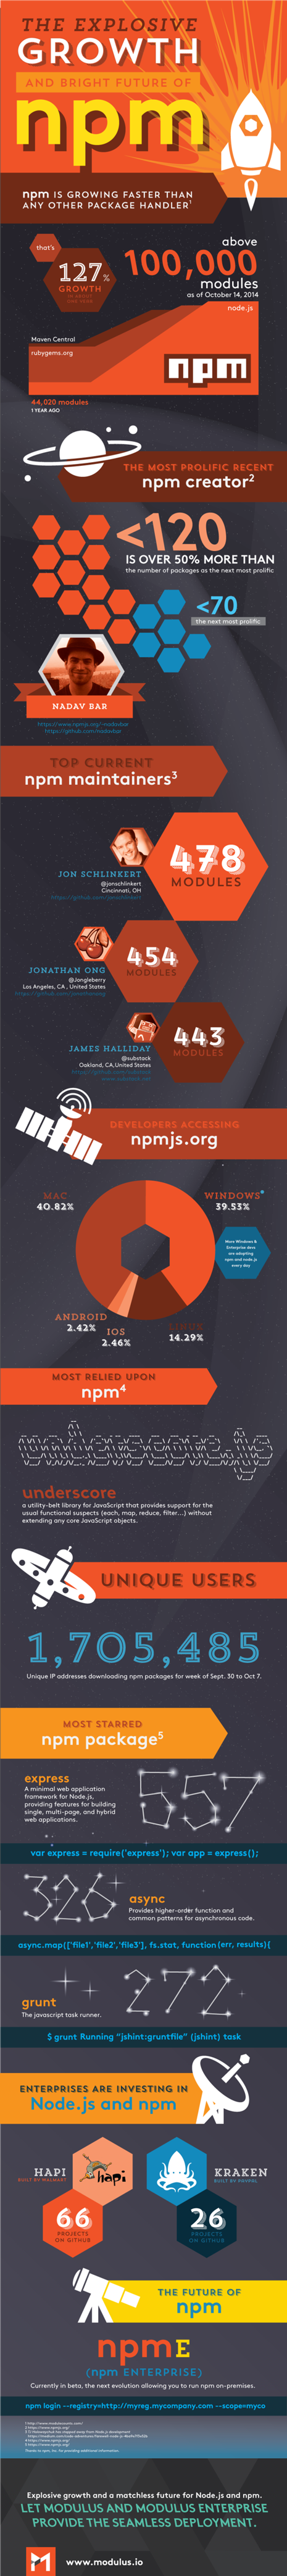 module-counts-infographic-light